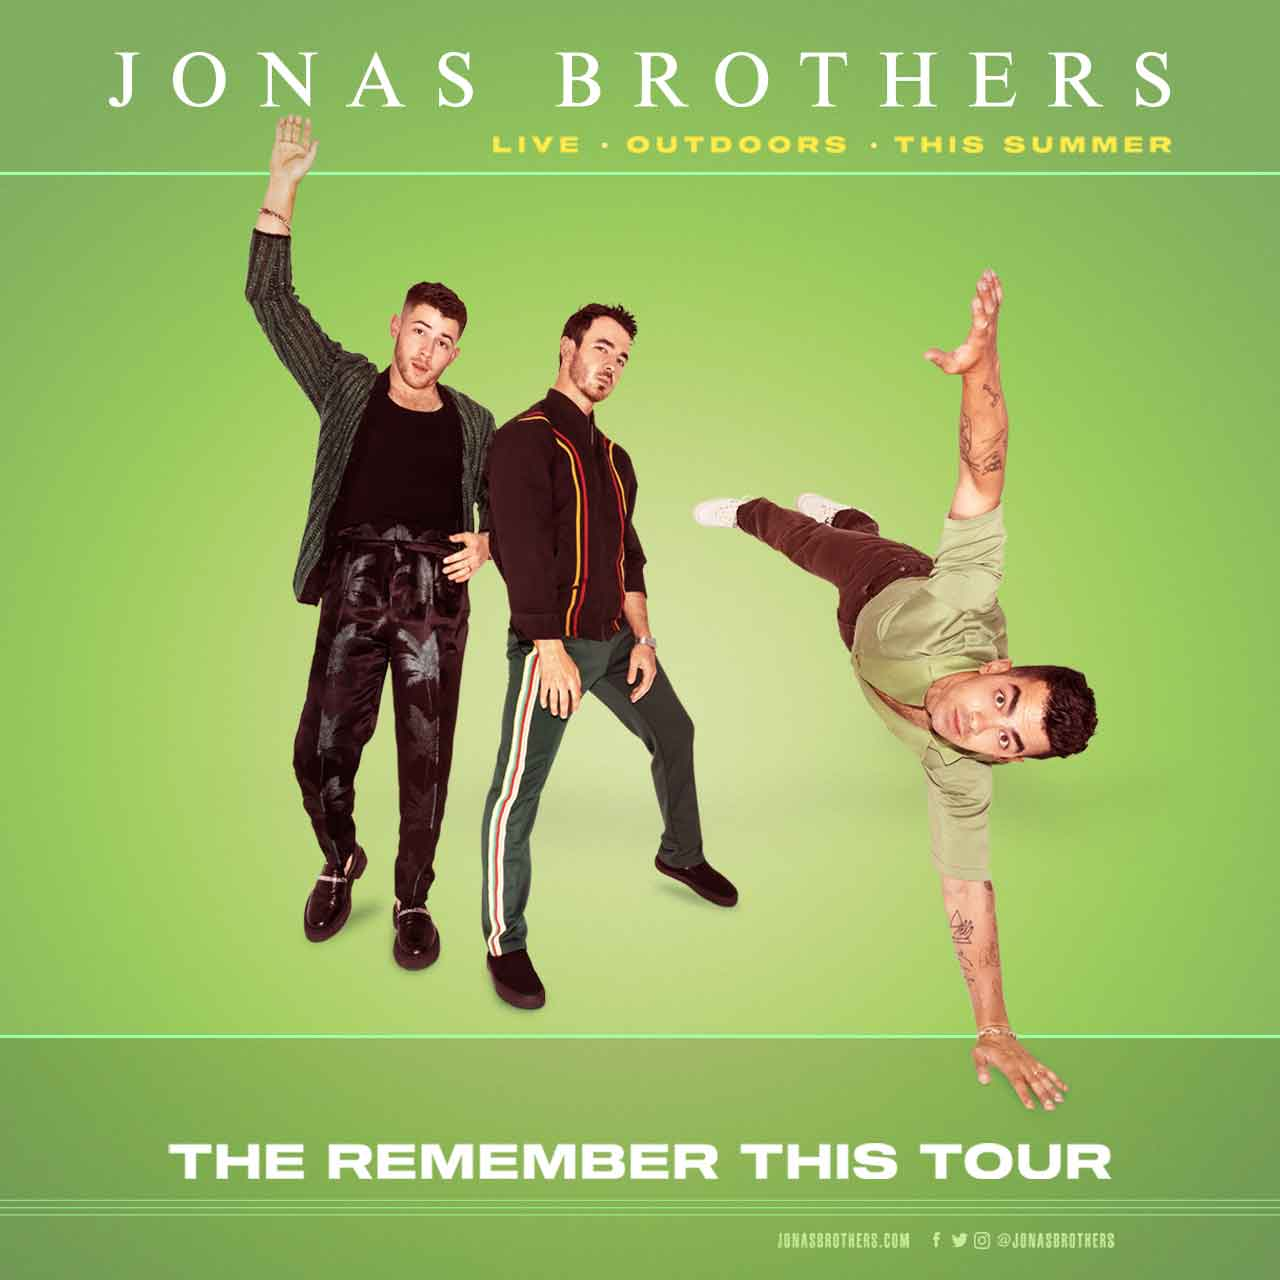 The Remember This Tour